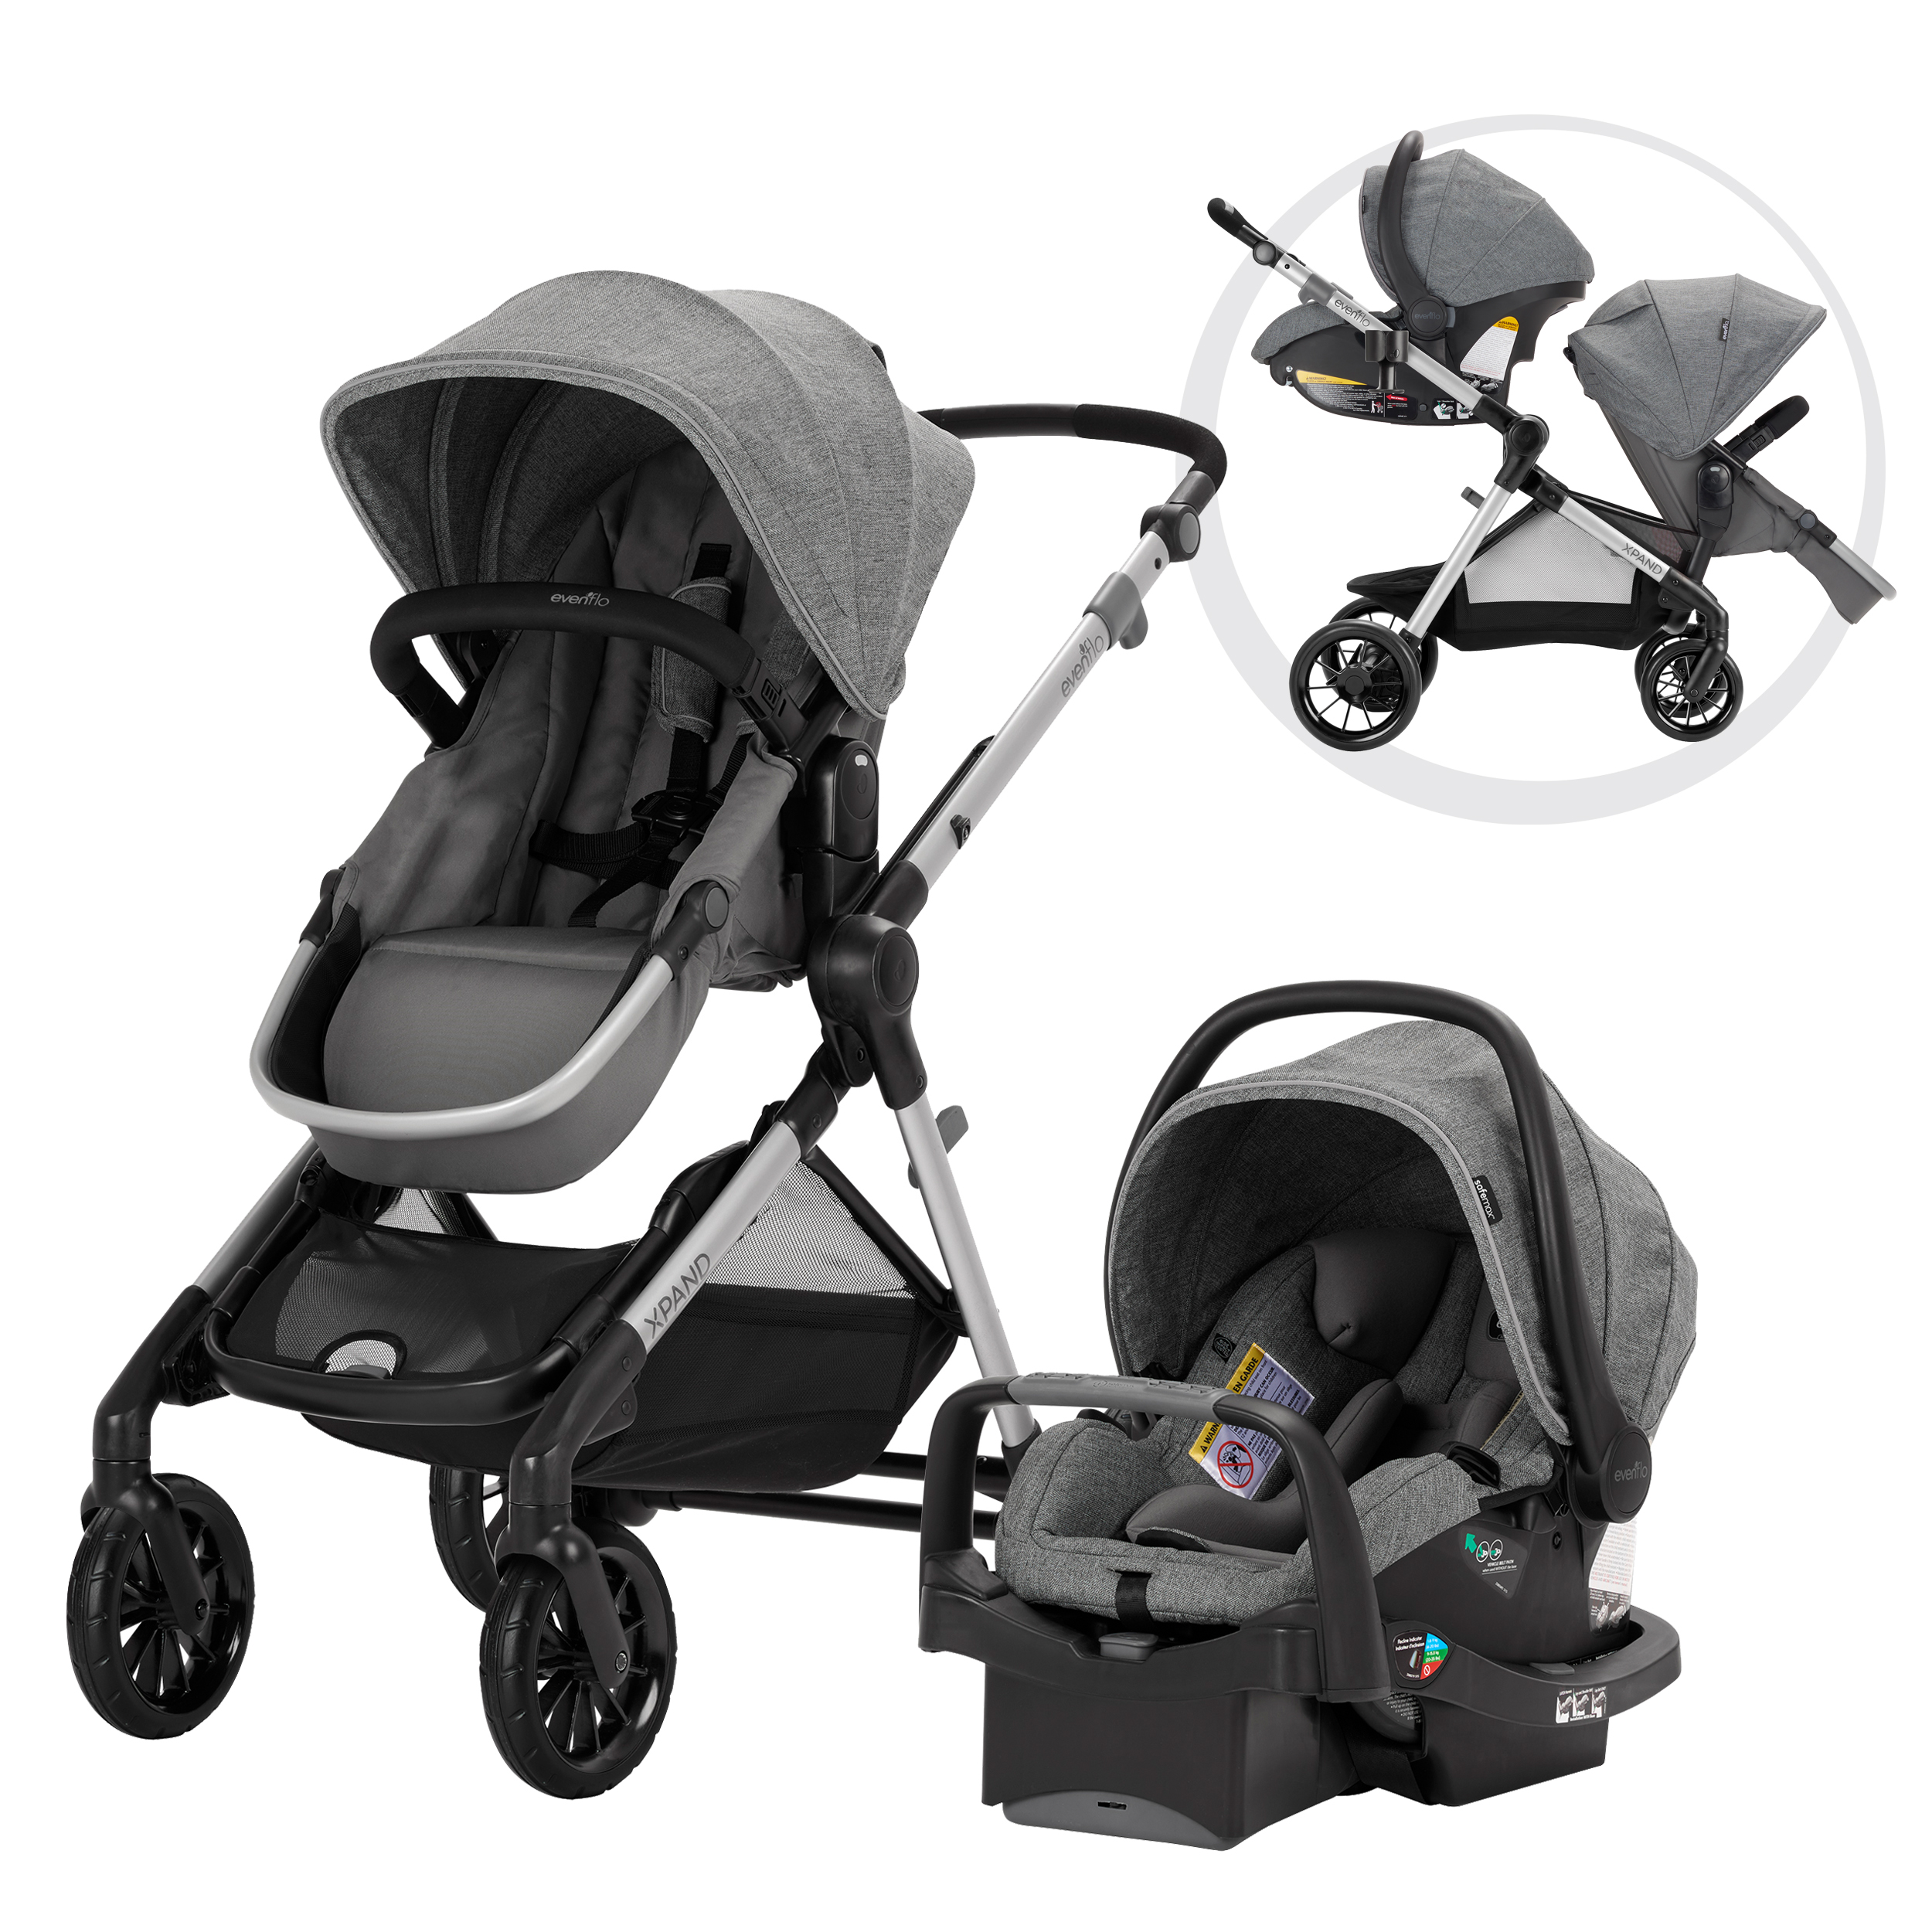 Evenflo Minno Twin Lightweight Double Stroller, Glenbarr ...